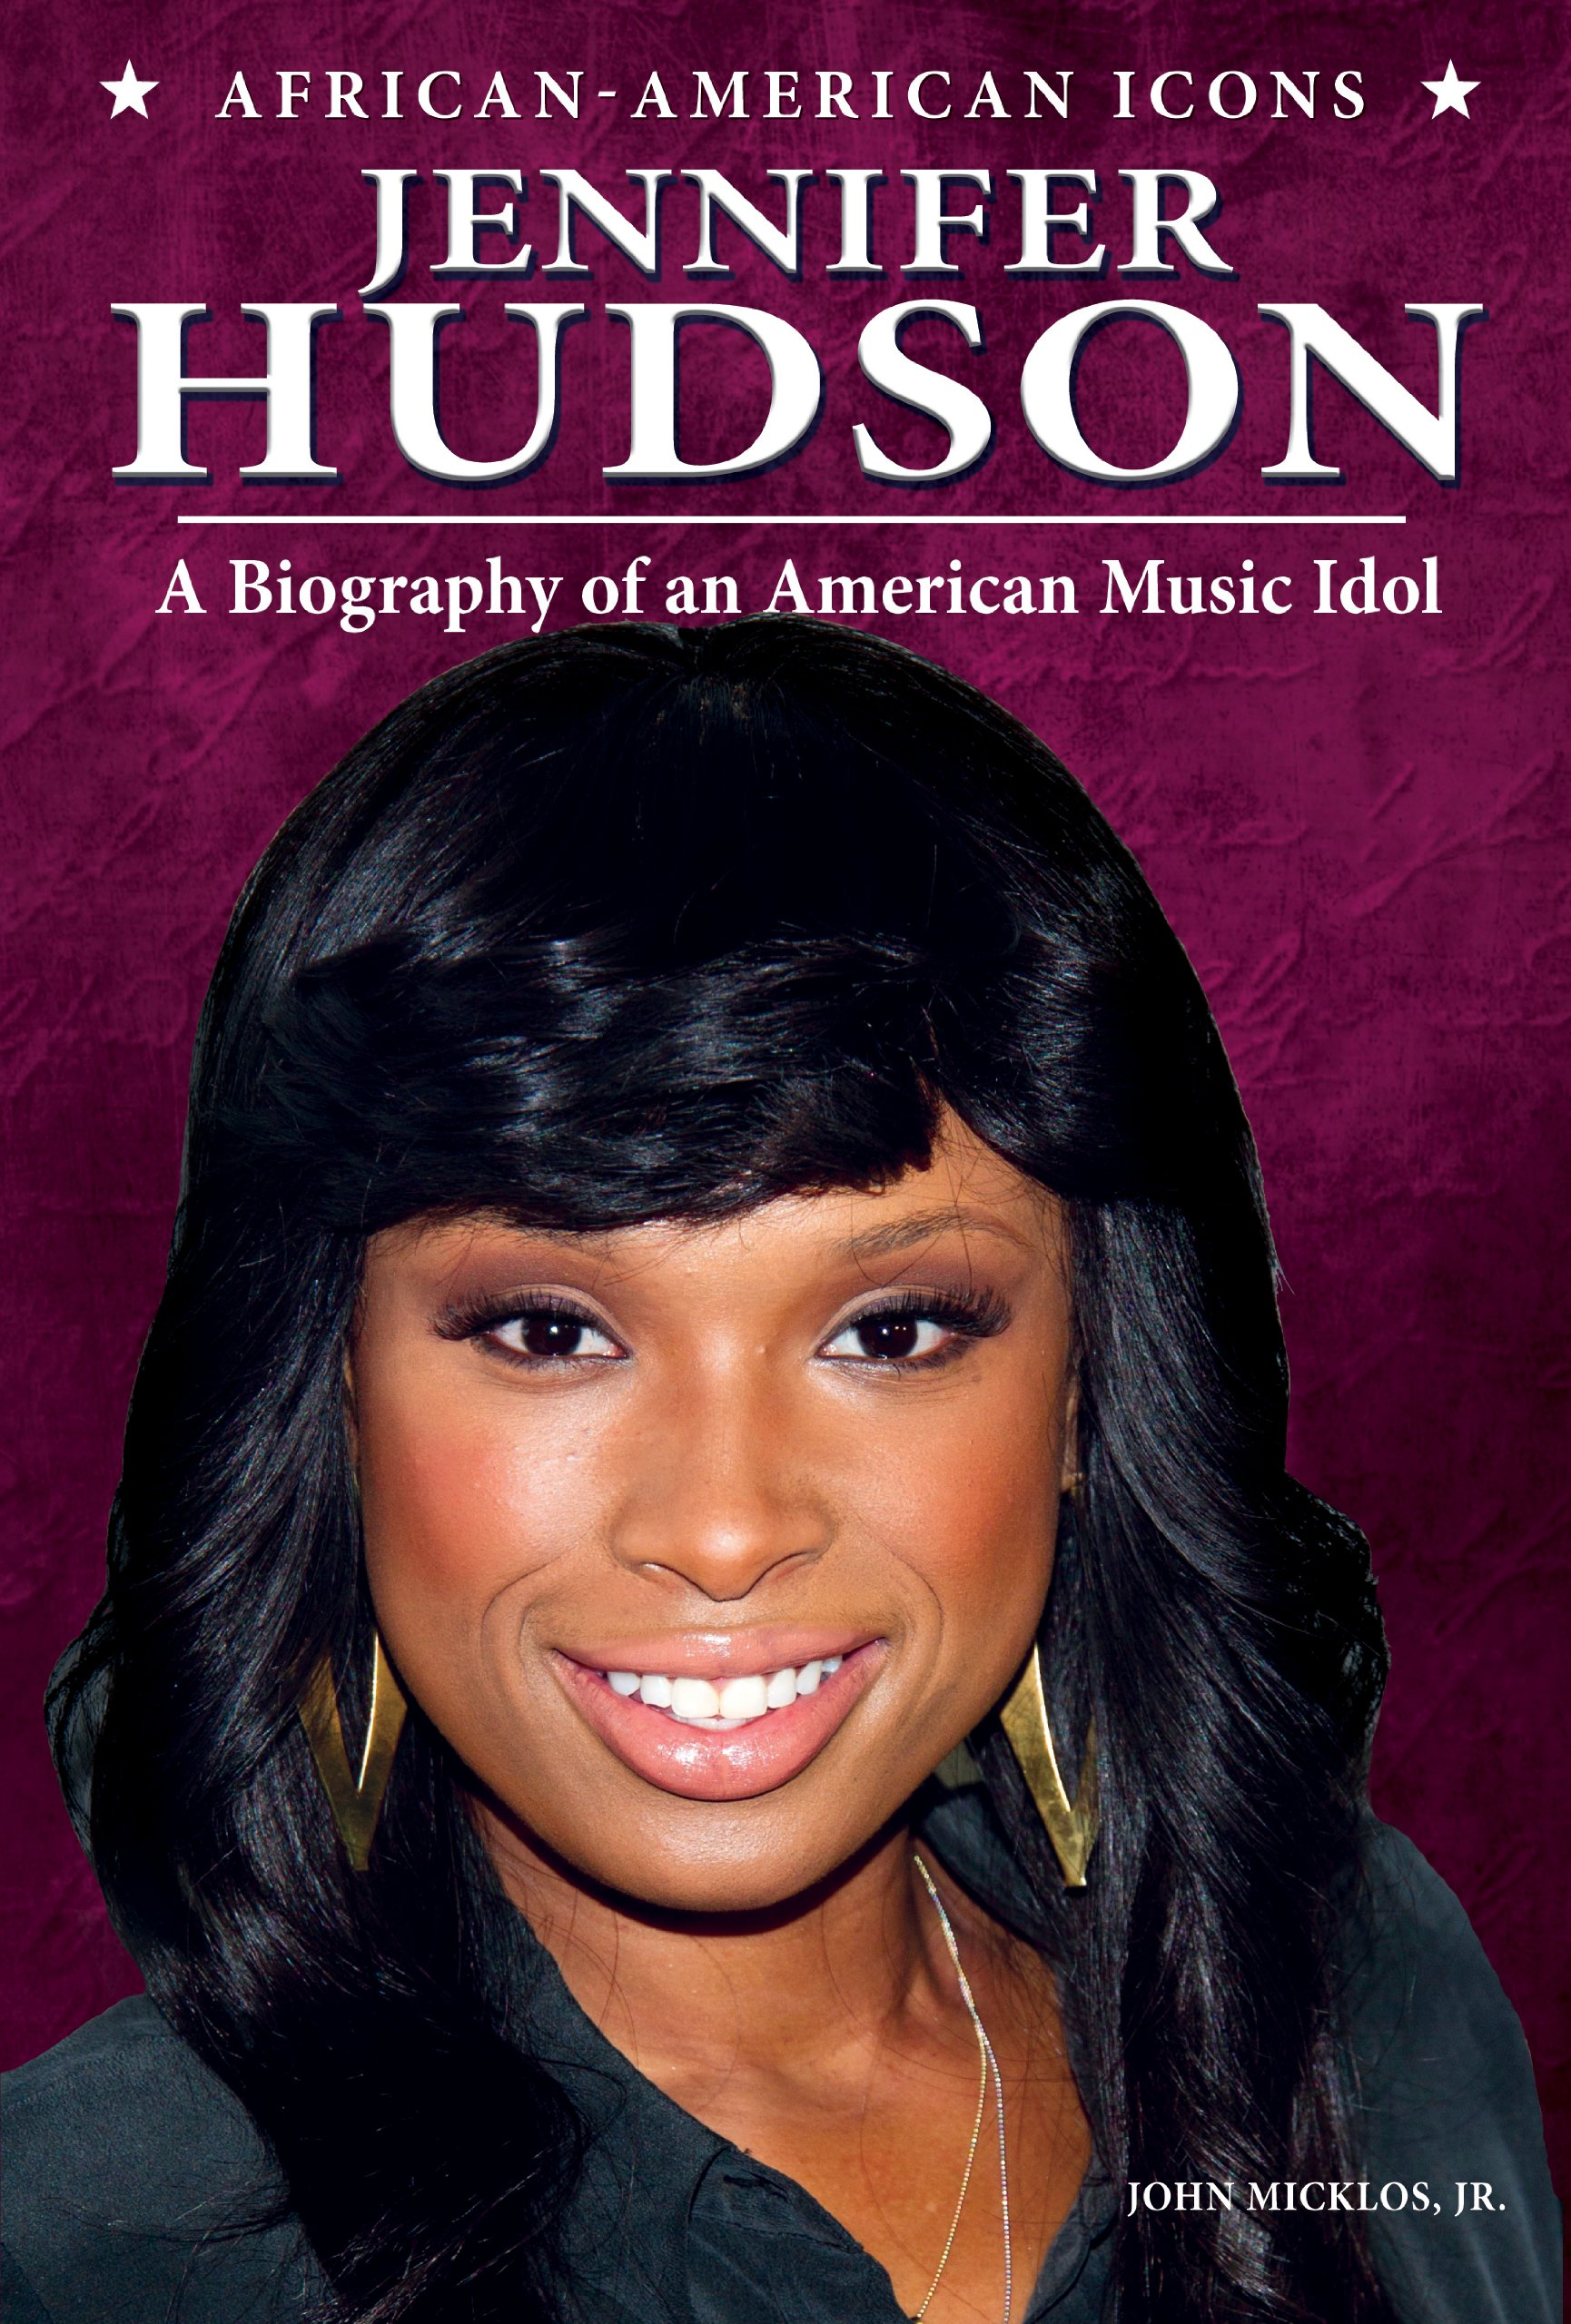 Jennifer Hudson: A Biography of an American Music Idol (African-American Icons) pdf